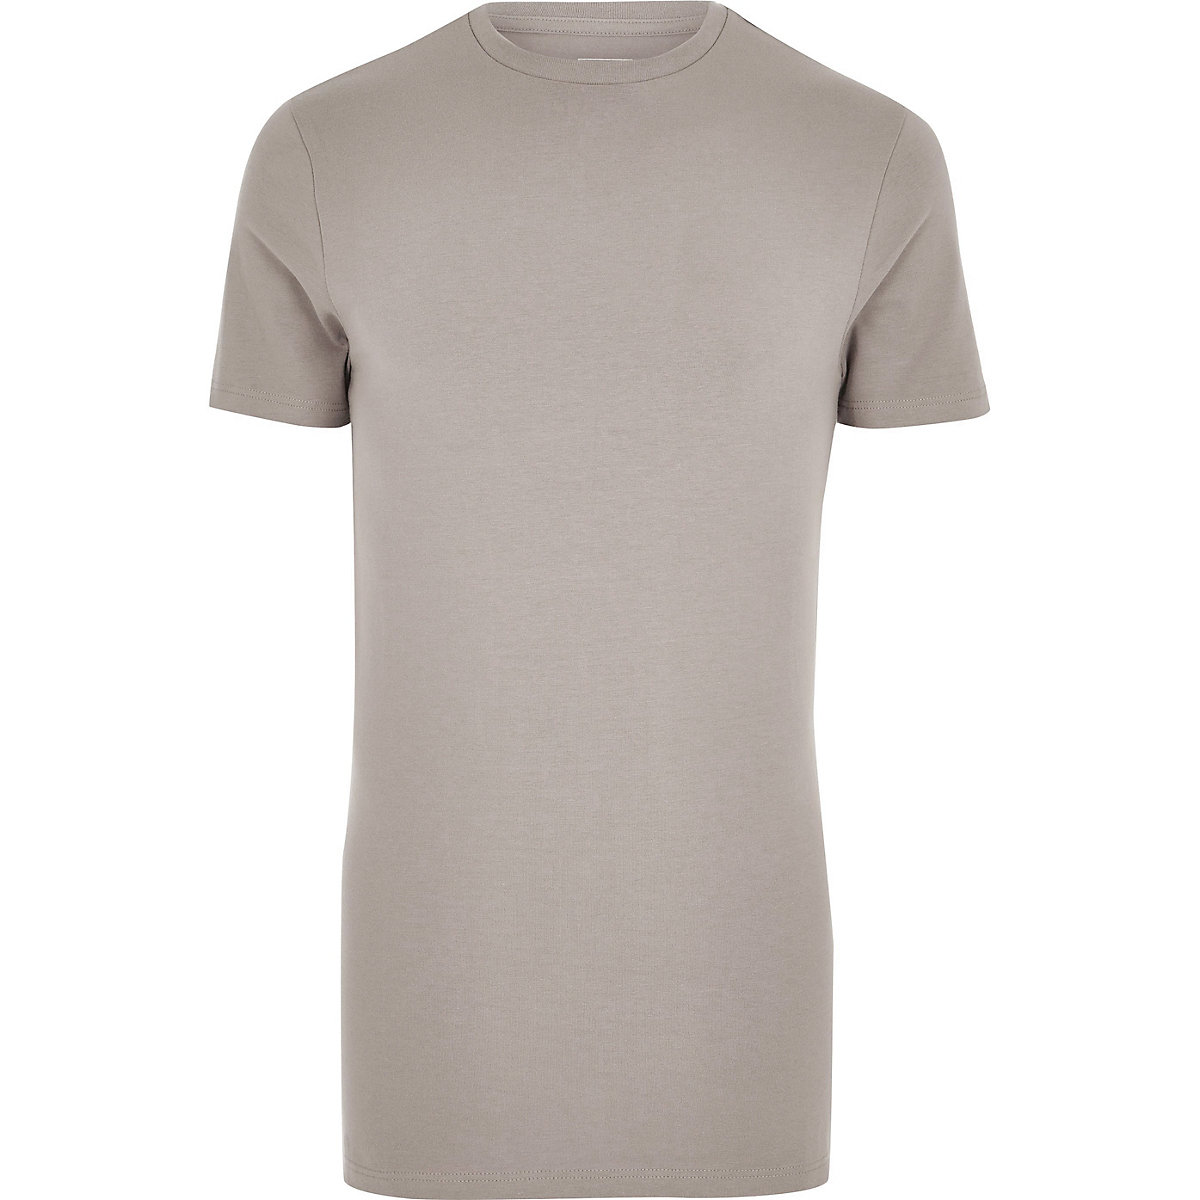 Brown muscle fit longline T-shirt